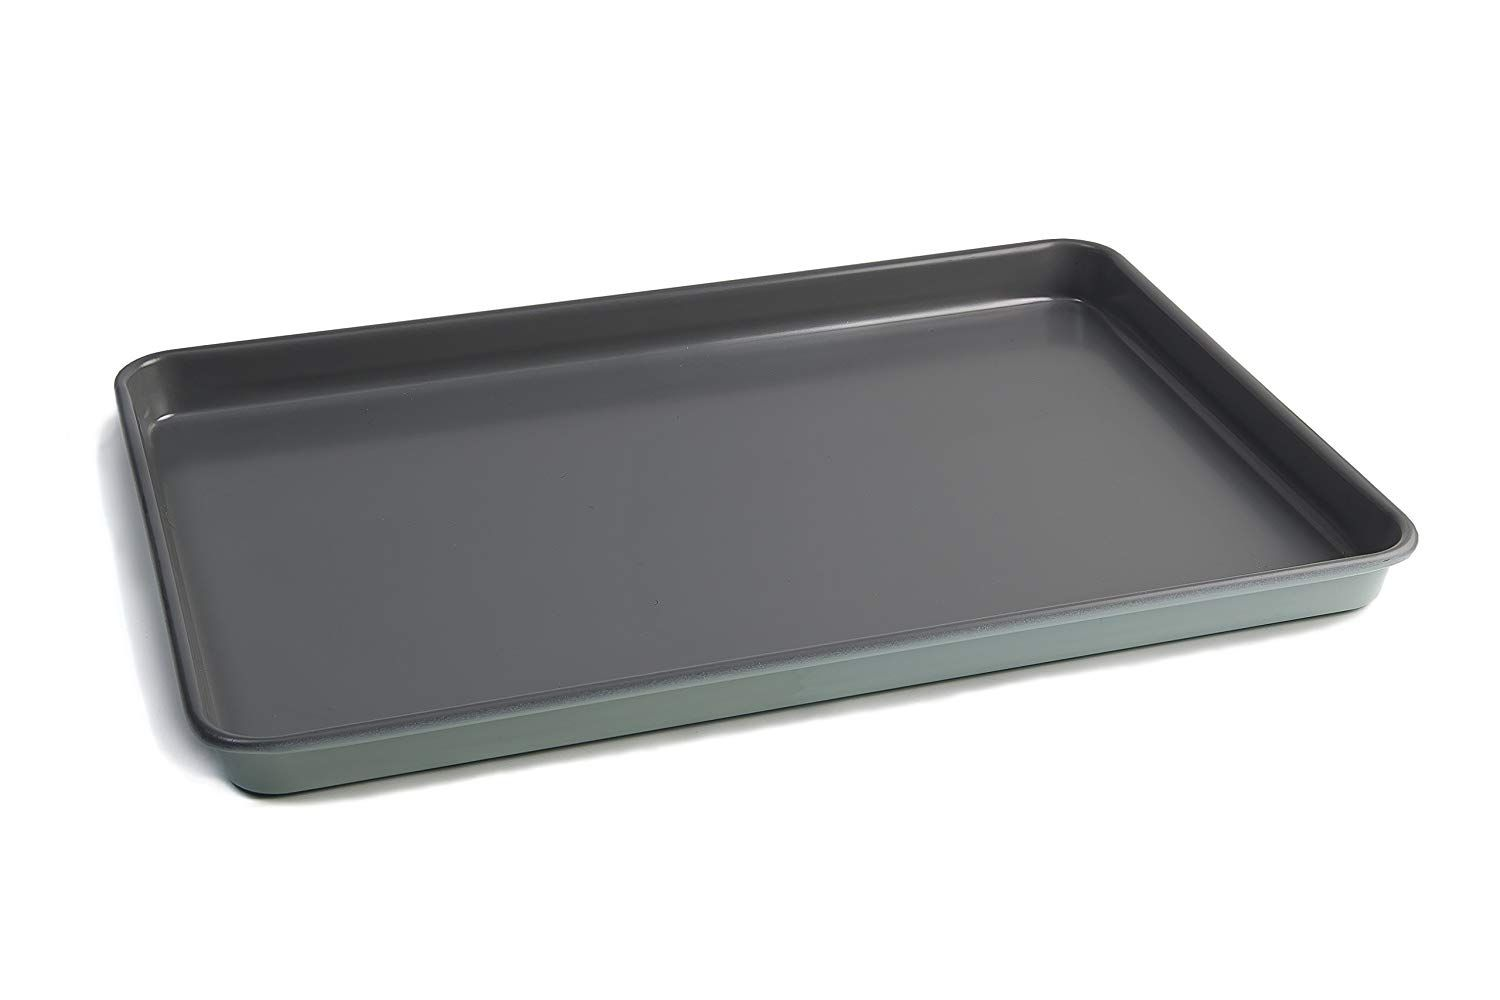 Jamie Oliver Baking Tray Nonstick Cookie Half Sheet Pan Professional Heavy Guage Carbon Steel Construction 15 X 10 In Tray Bakes Jamie Oliver Half Sheet Pan